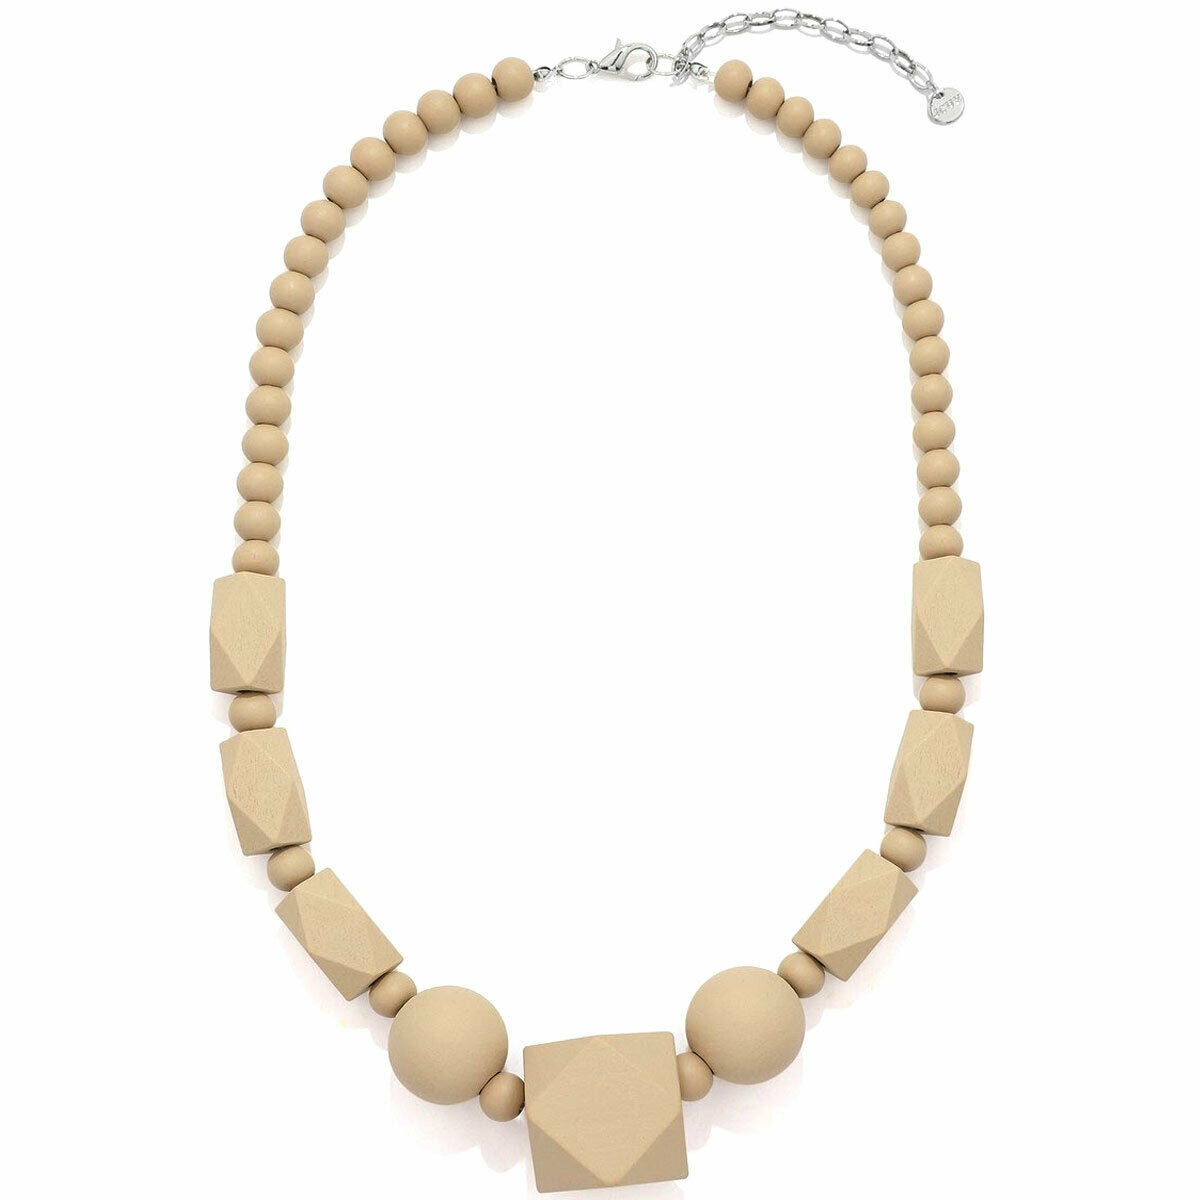 Pastel beige bead necklace made from a lightweight wood fashion jewellery design - $21.85